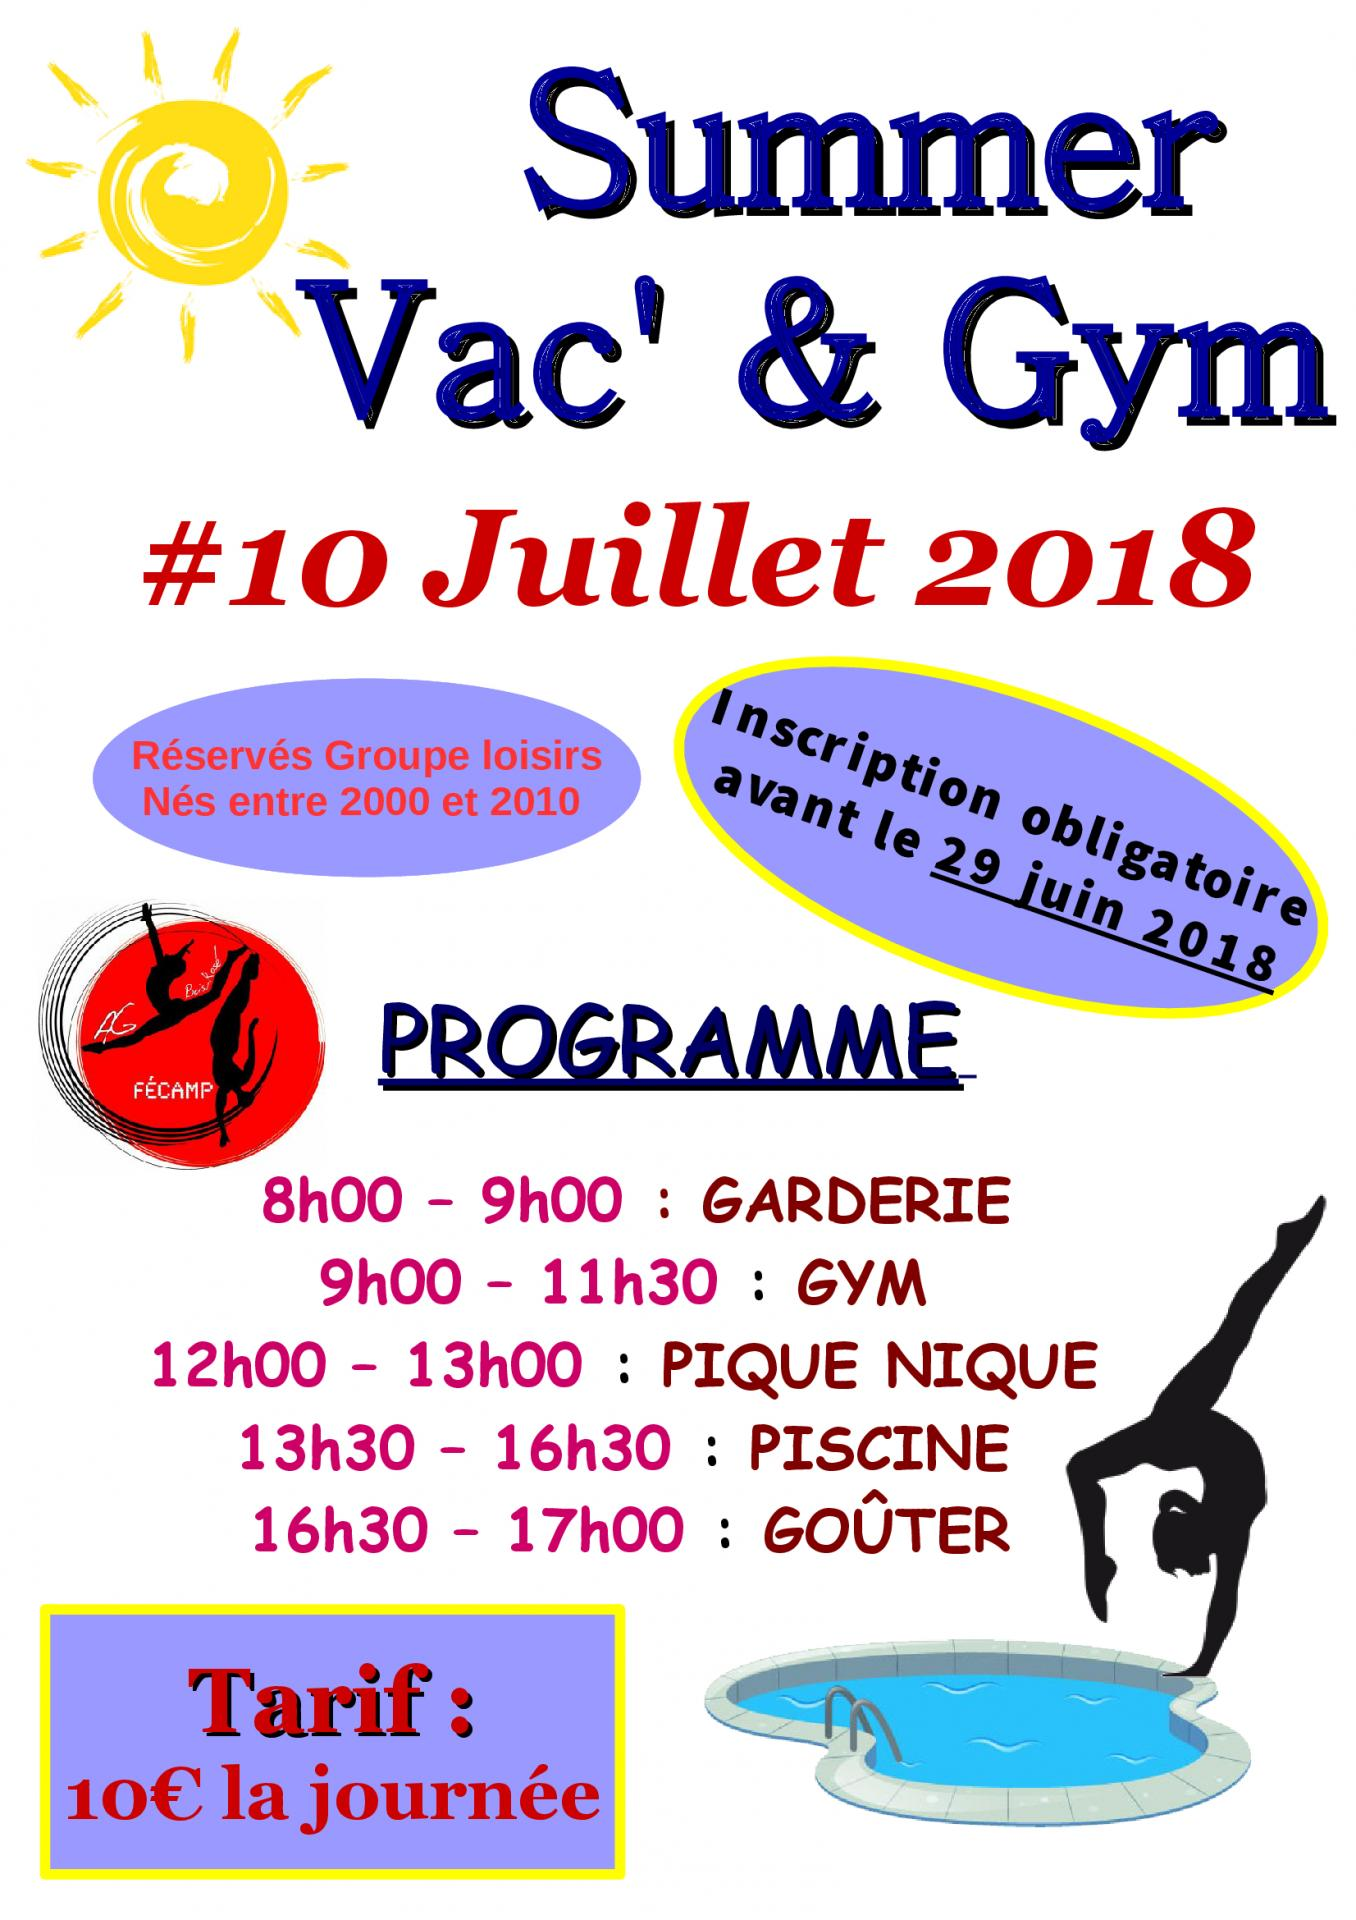 Summer vac gym 2